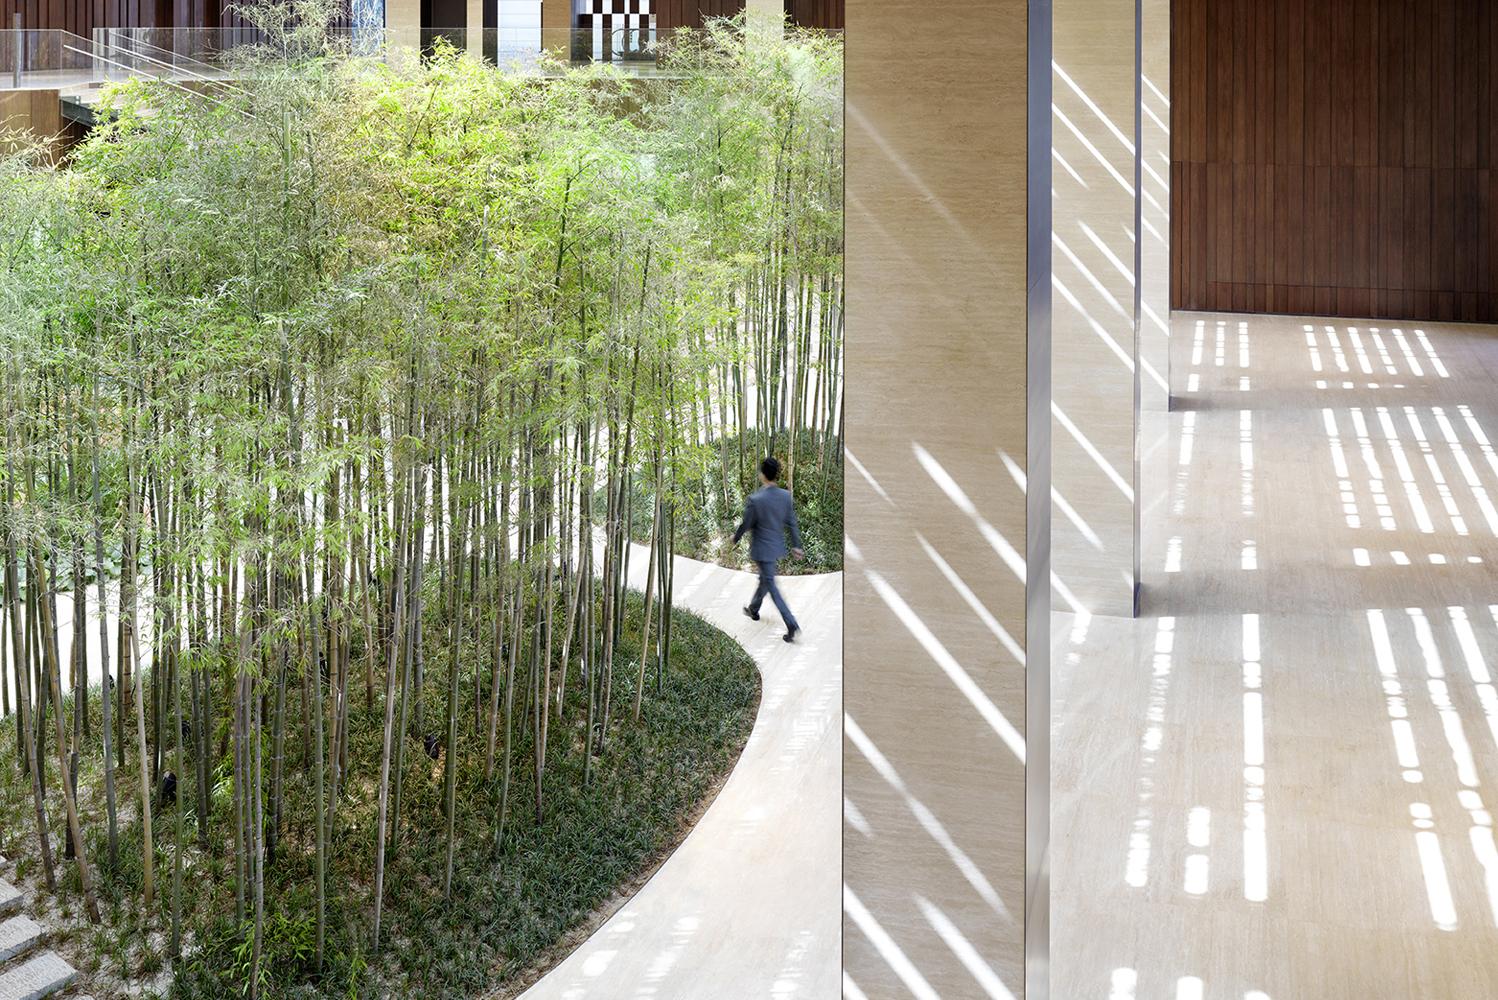 A biophilic design – known to incorporate natural materials, elements and views – is deeply engrained in the hotel's design.